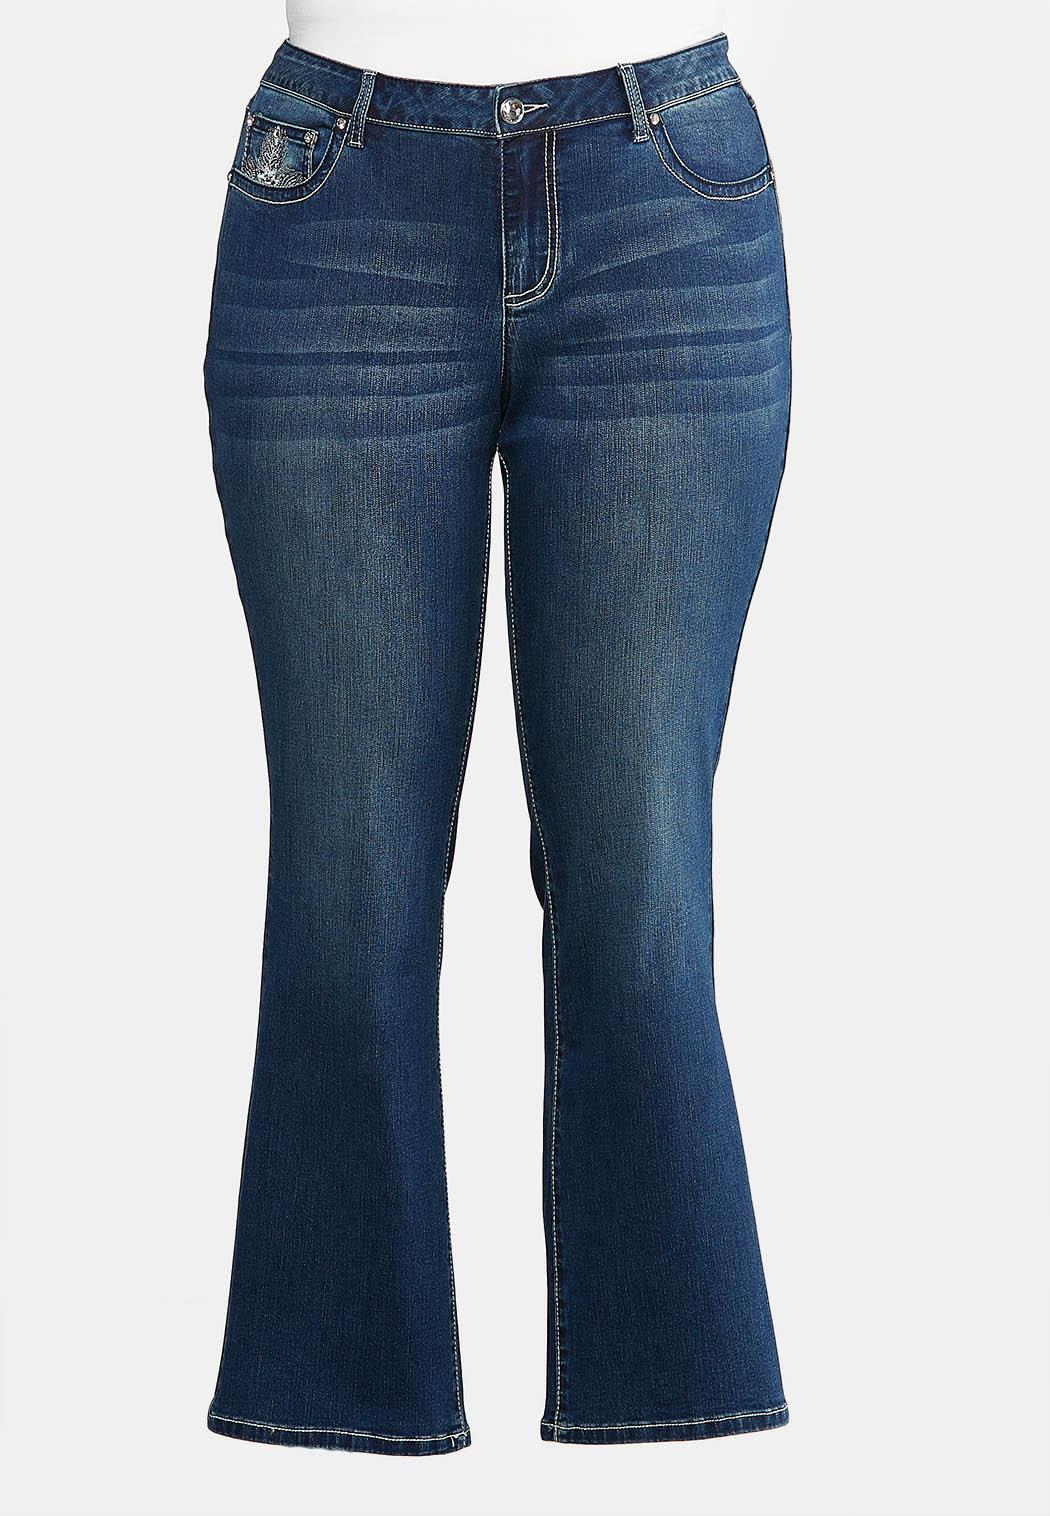 Plus Petite Bootcut Bling Feather Jeans (Item #43942797)